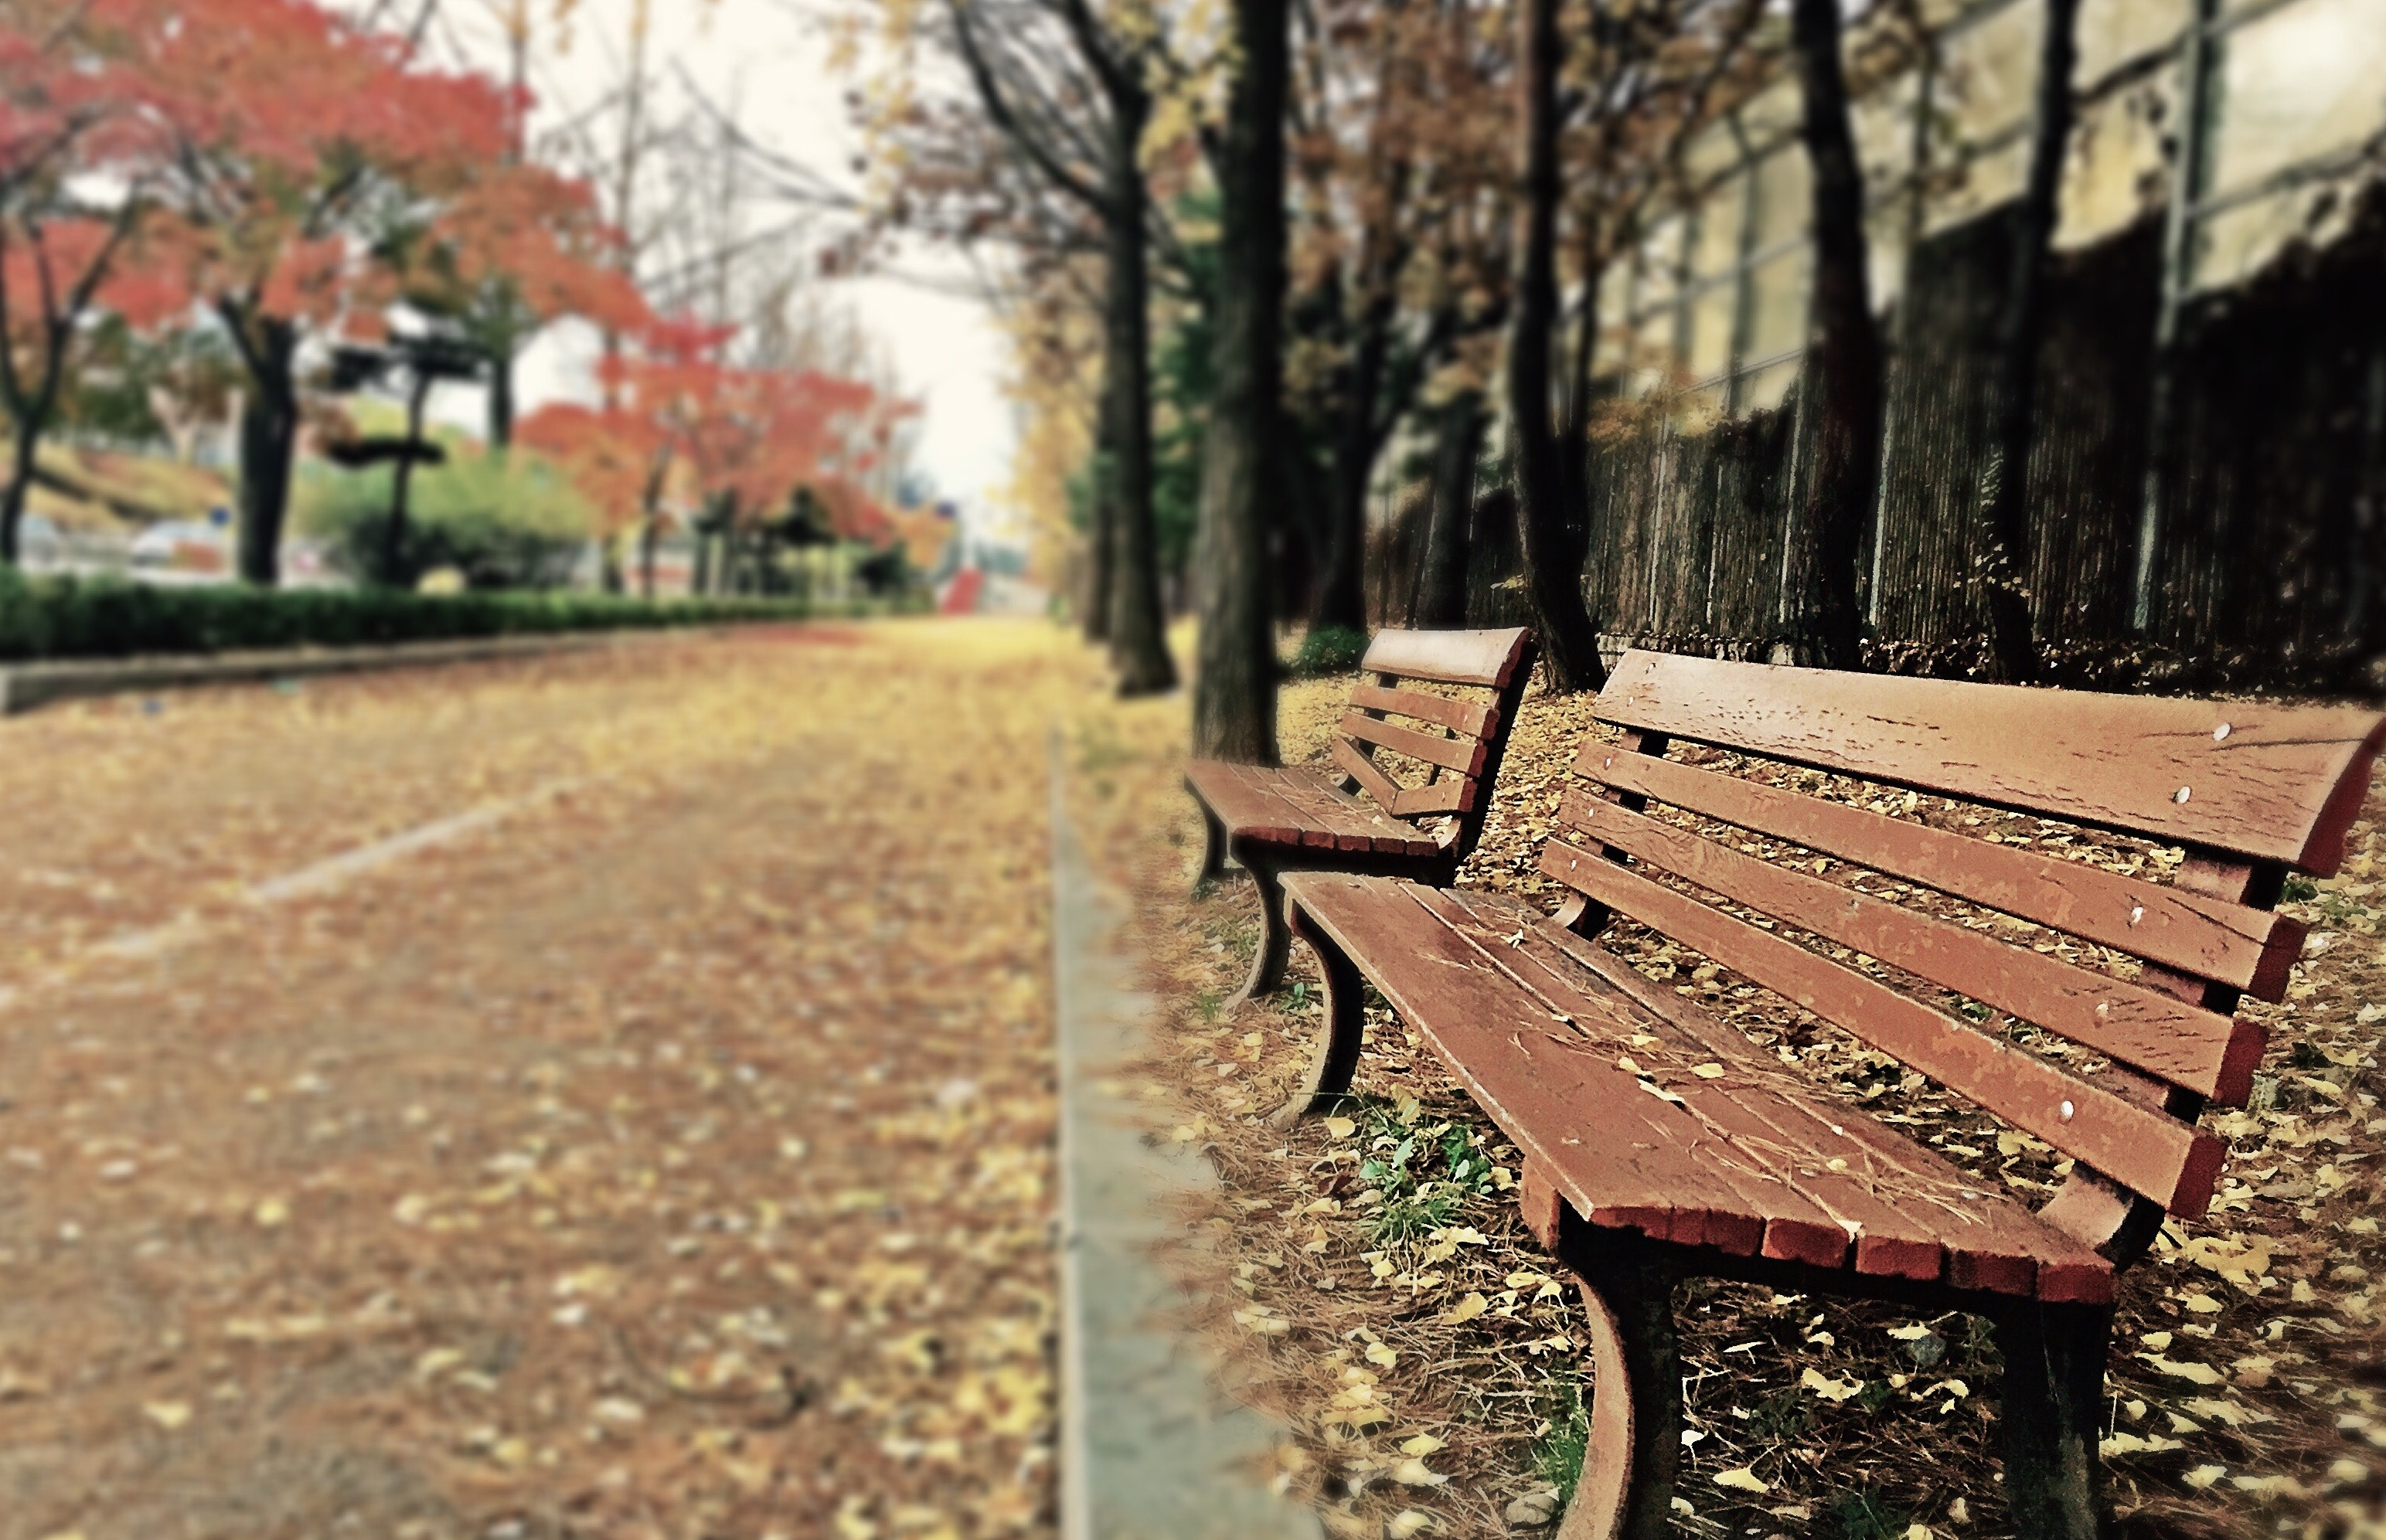 20 Creative Fall Photography Ideas - Brown Wooden Bench with Brown Dried Leaves by Zino Bang via Pexels | http://www.roseclearfield.com